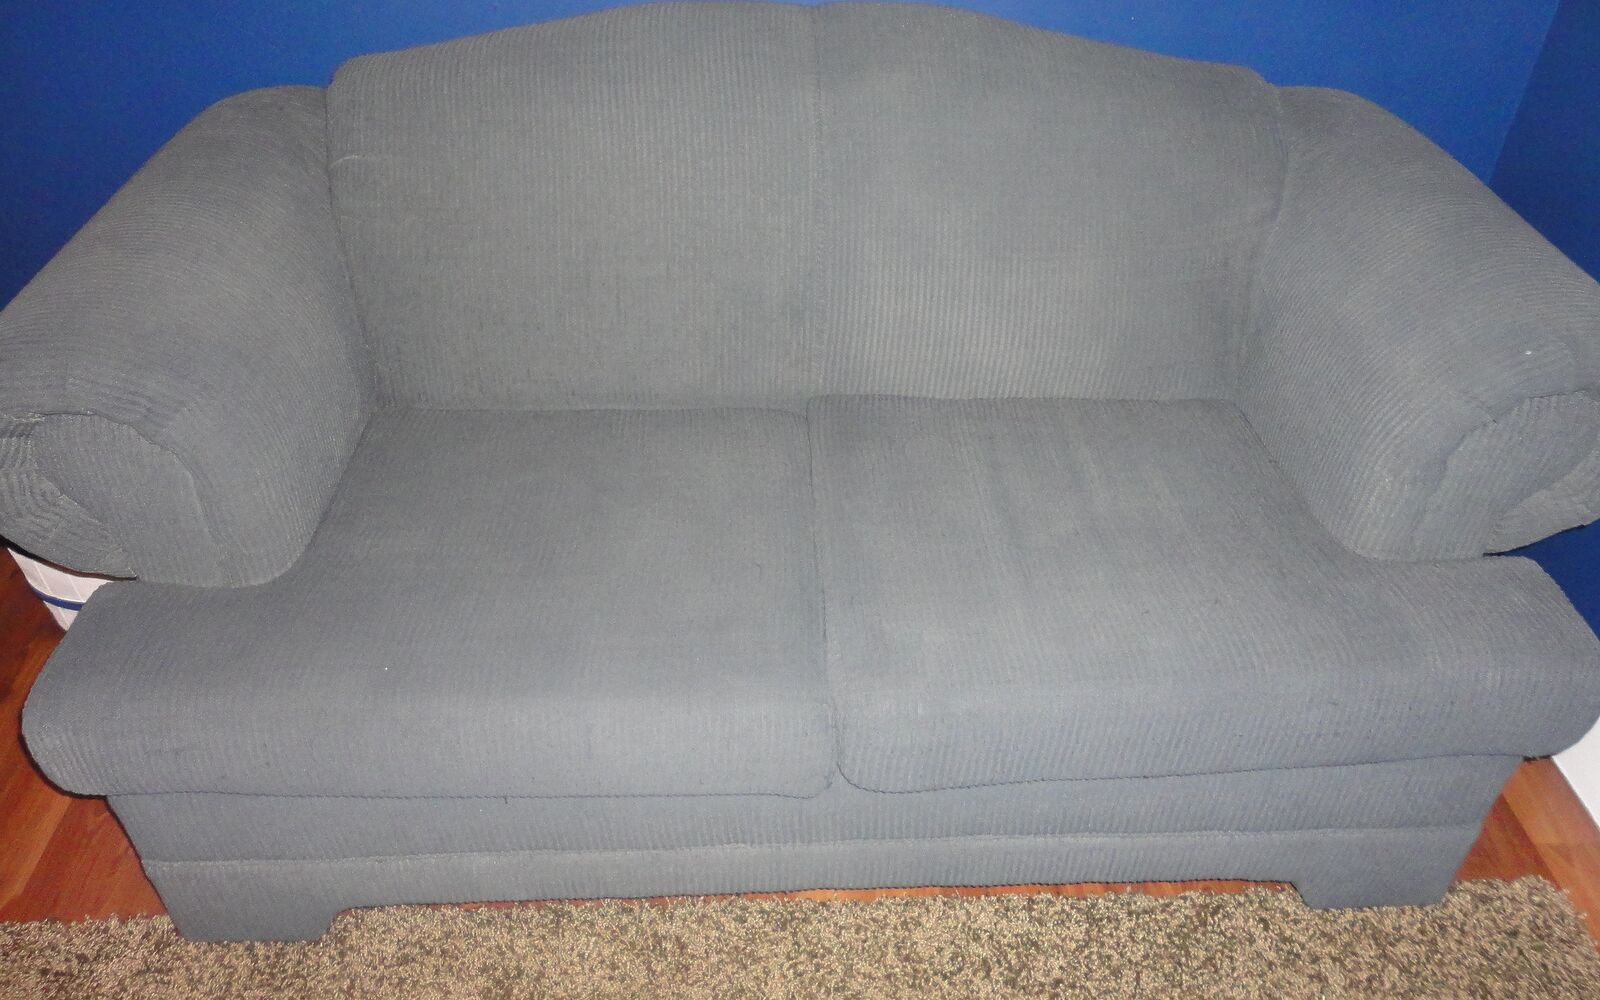 s hide your couch s wear and tear with these great ideas, Painted couch transformation